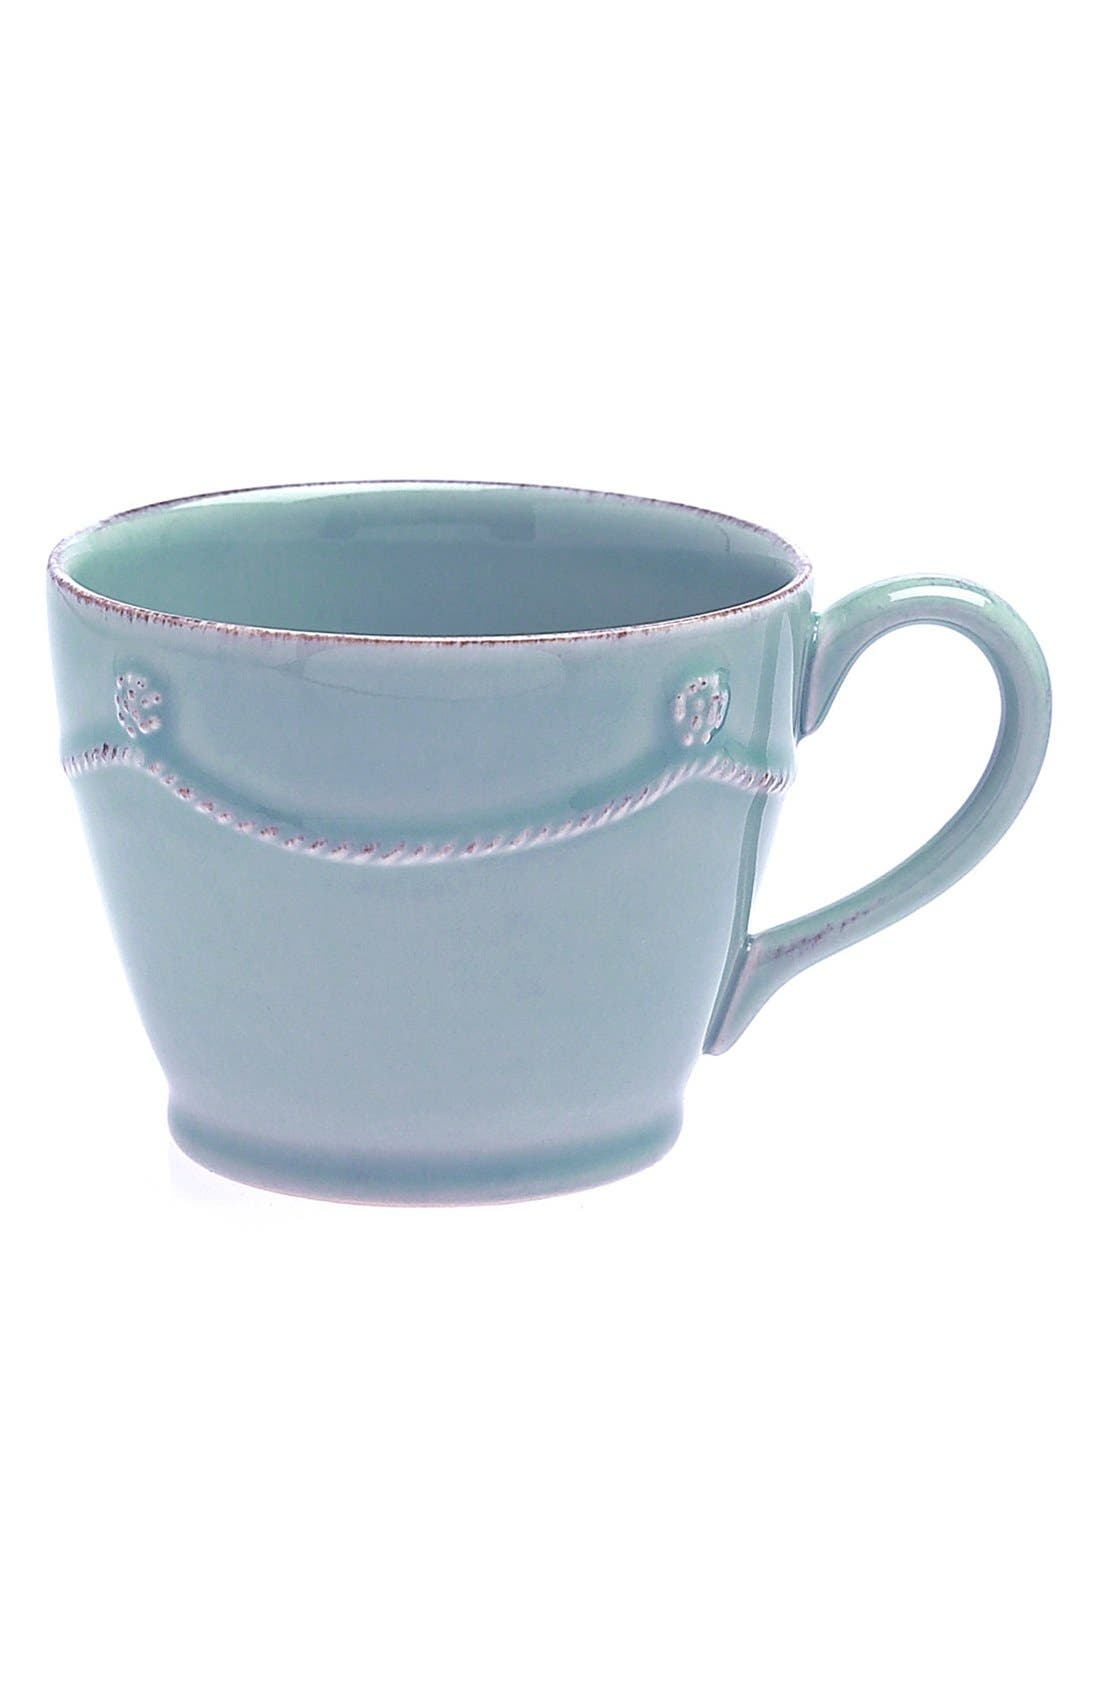 'Berry and Thread' Tea & Coffee Cup,                             Main thumbnail 1, color,                             Ice Blue